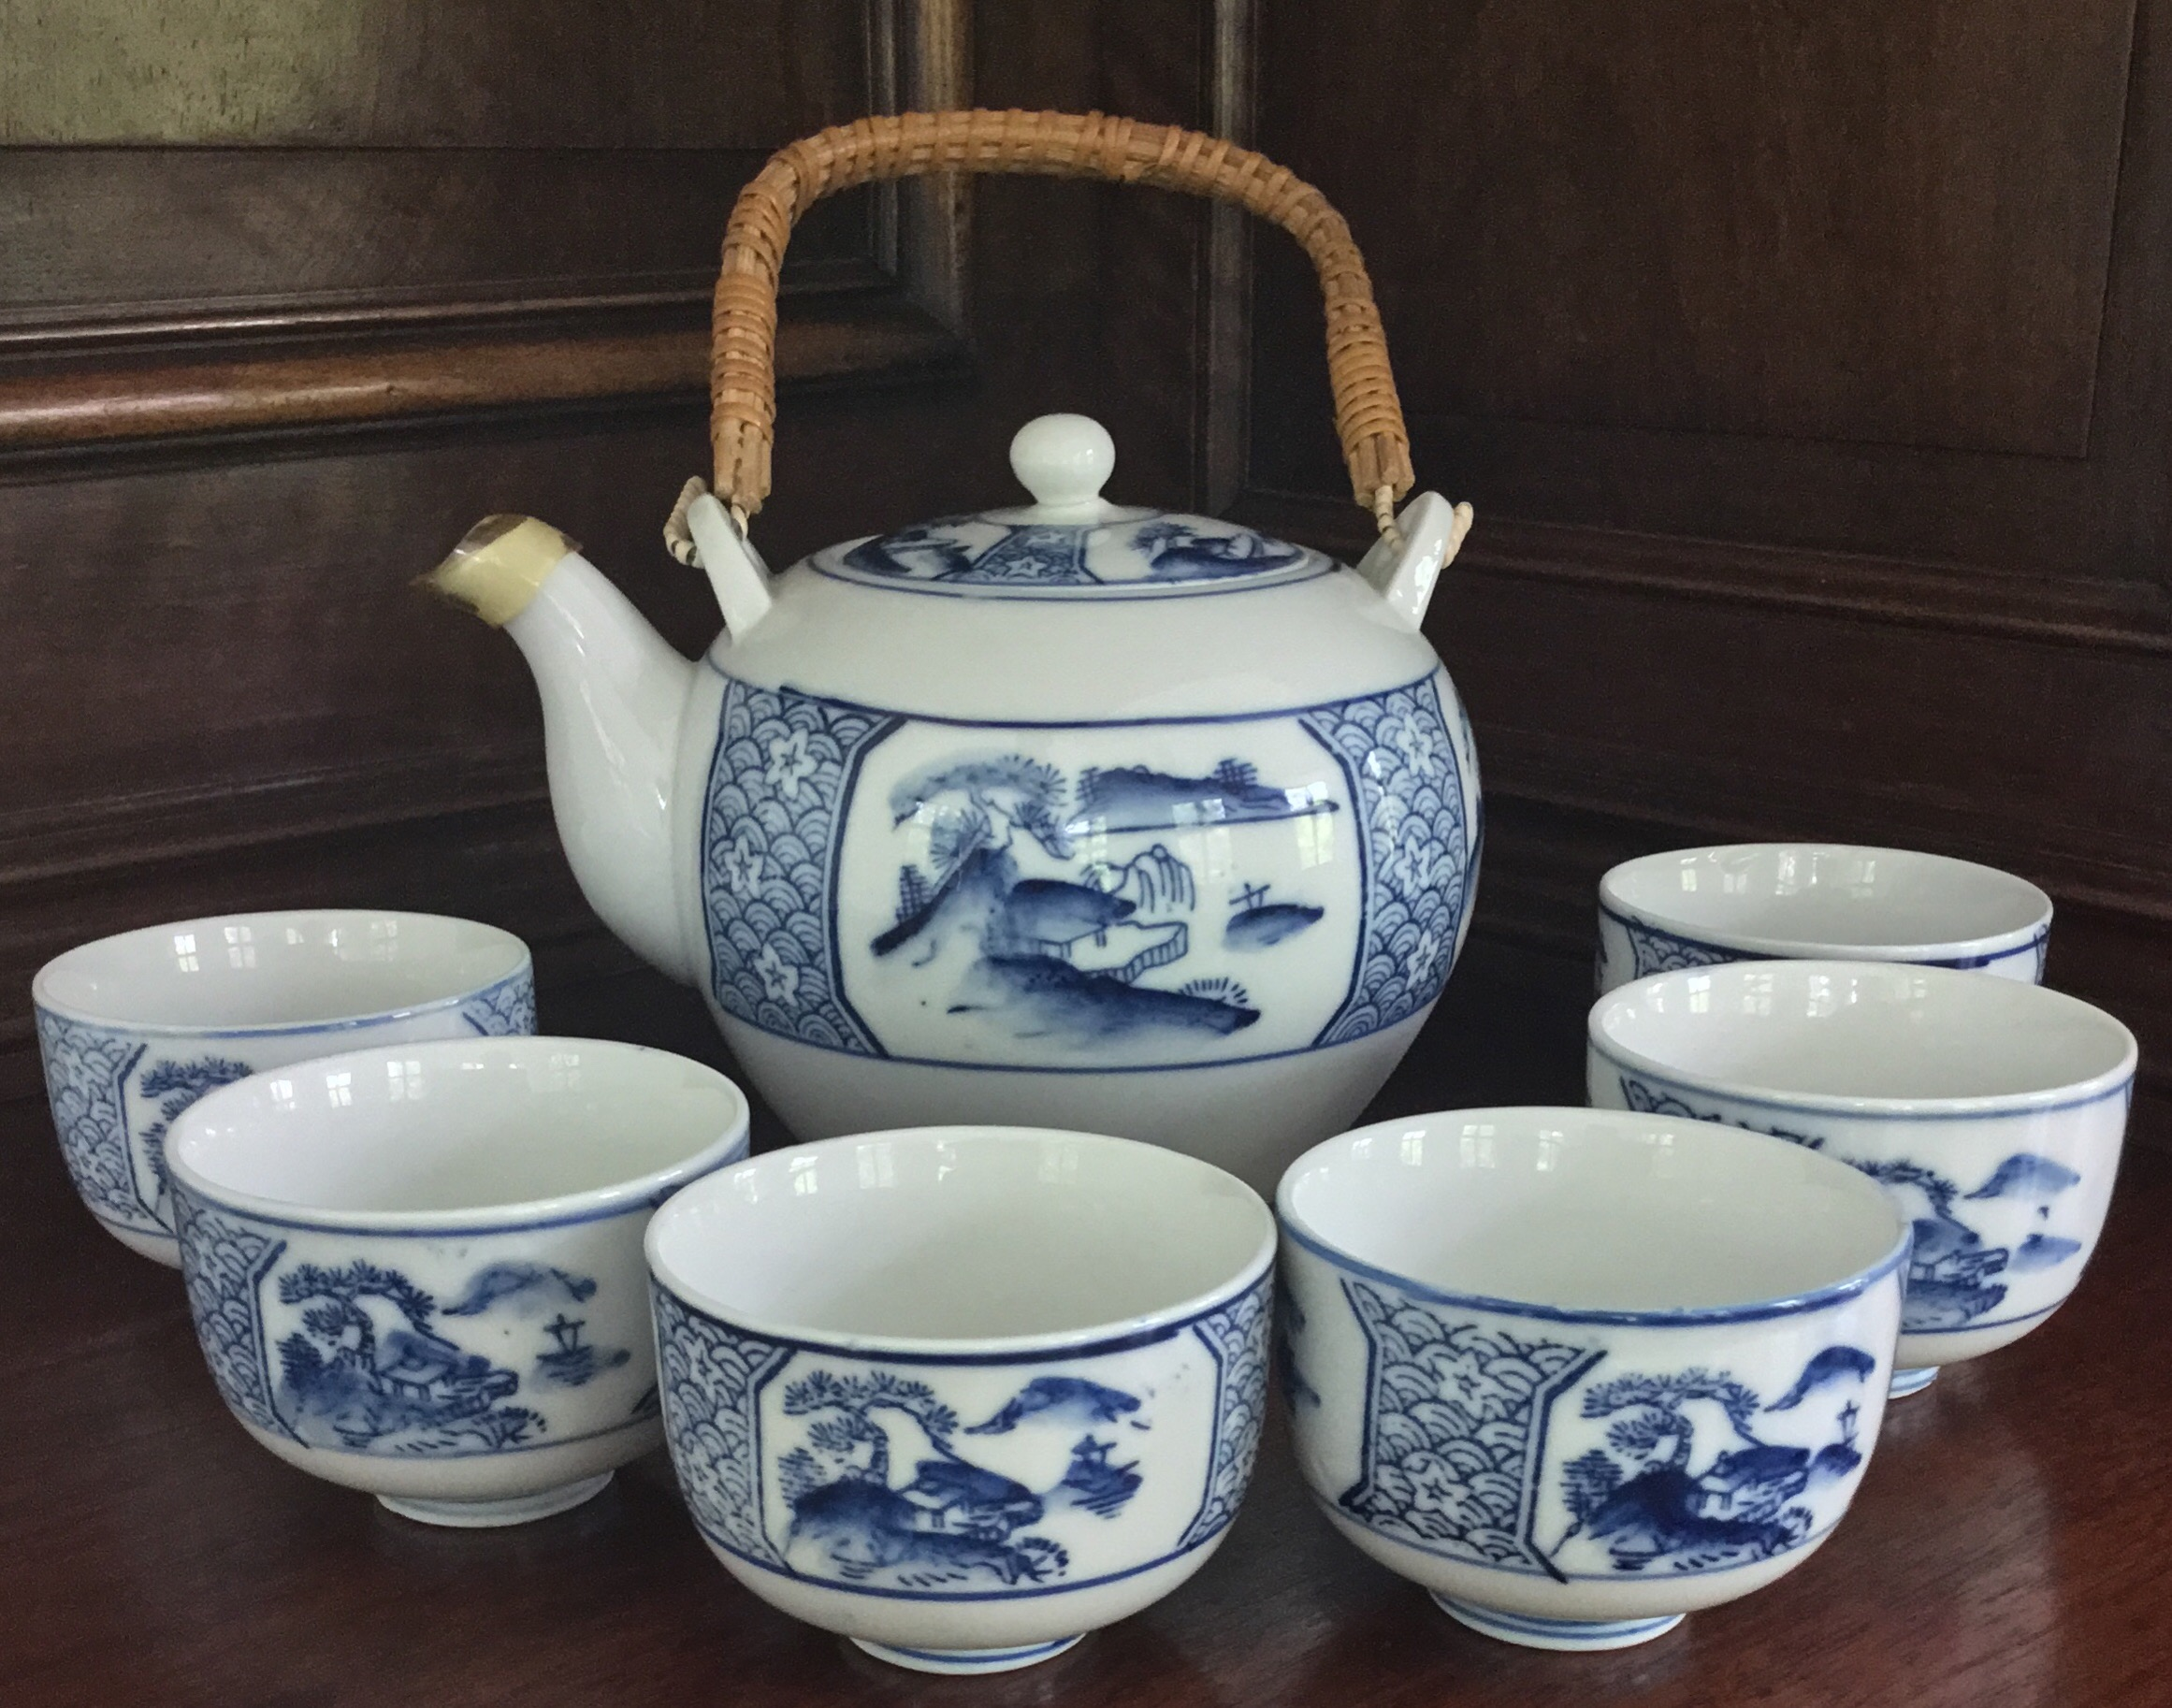 Decorative Teapot and Cups